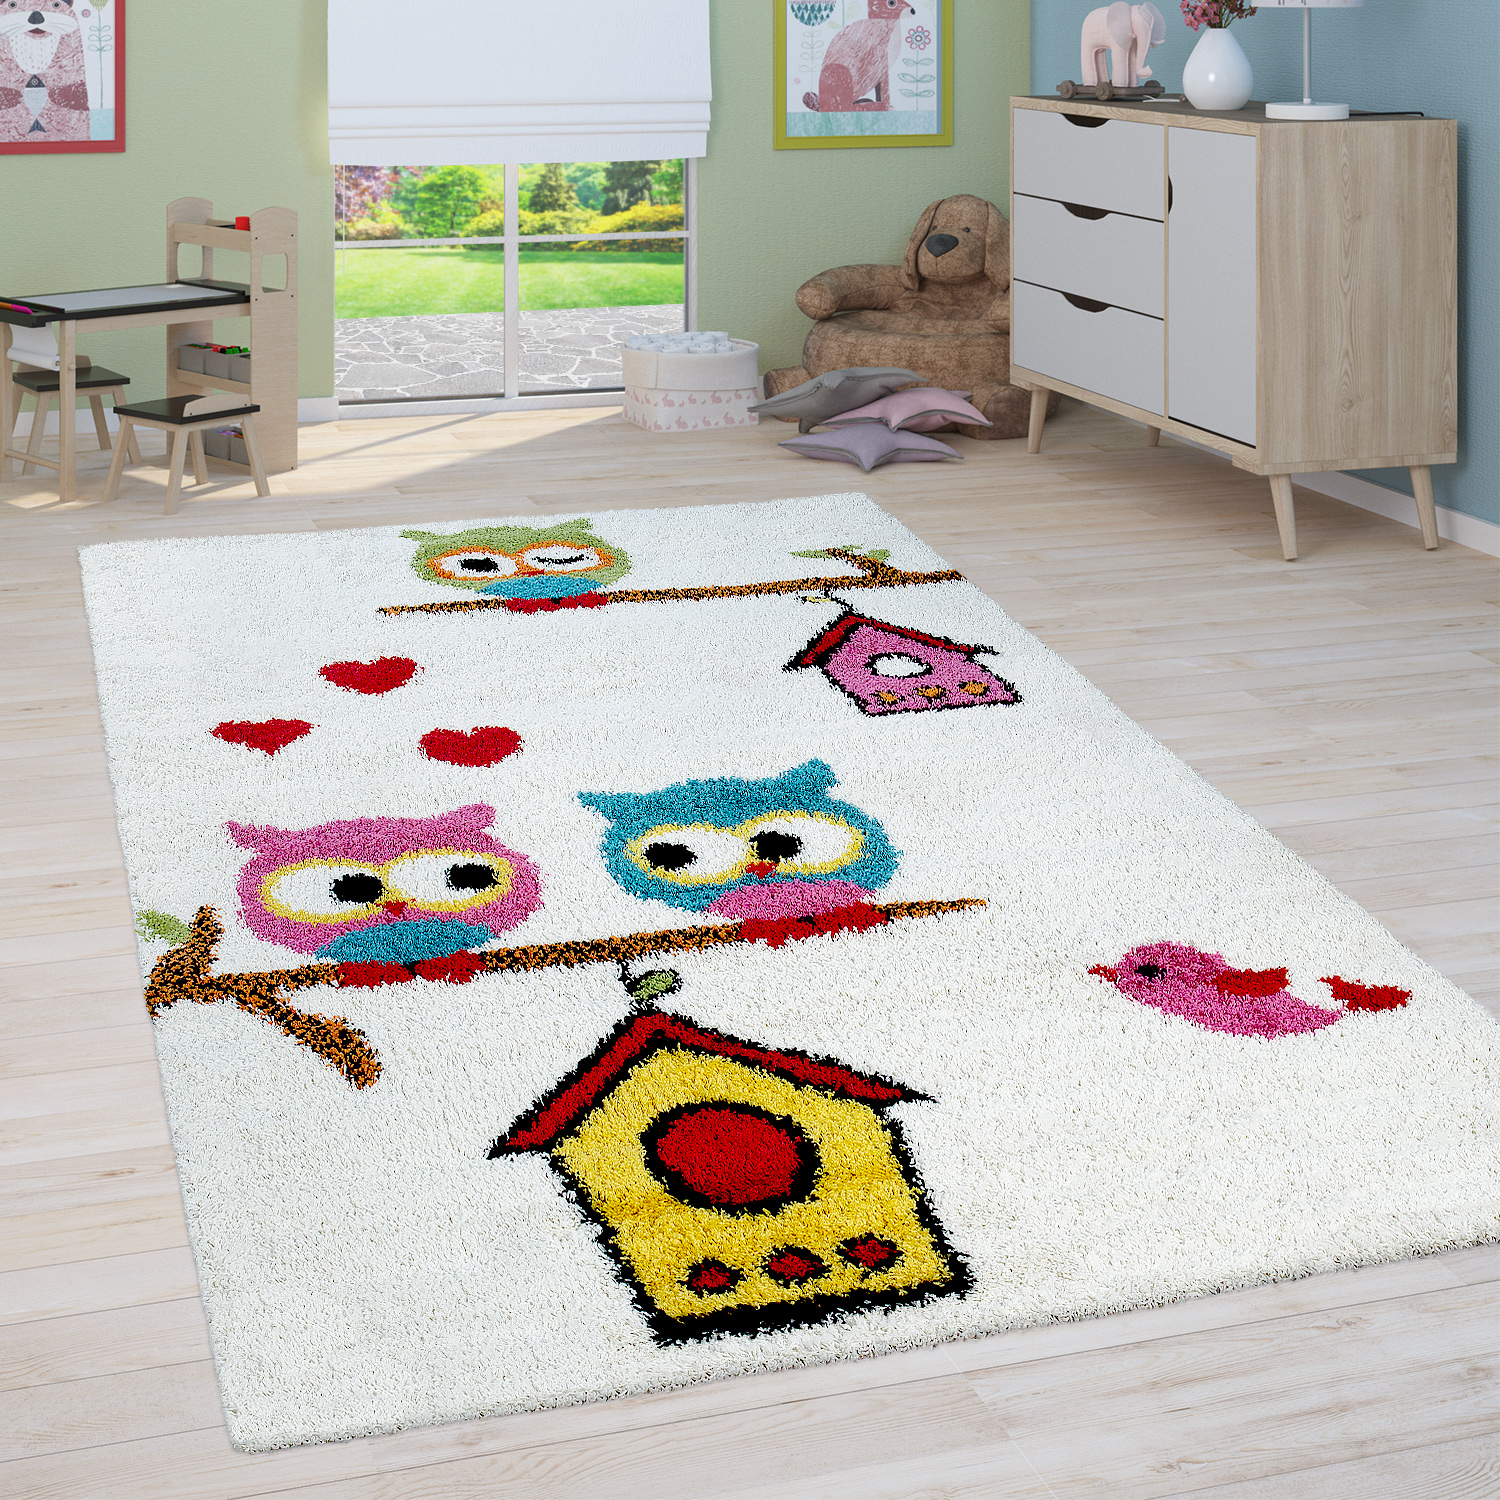 Children's Room Shaggy Rug Owls Children's Rug High-Pile in Cream Multicoloured